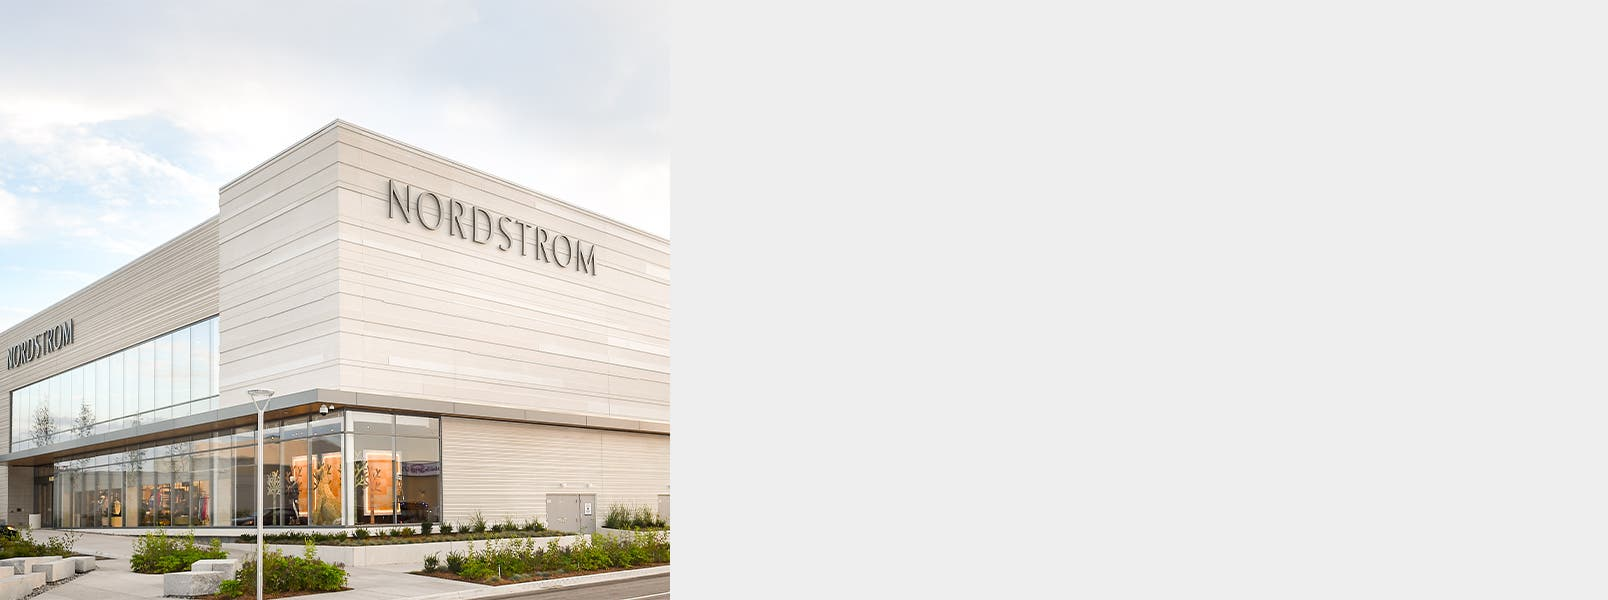 Check out your Nordstrom stores, plus online shopping just for Canada. Image: Nordstrom store.